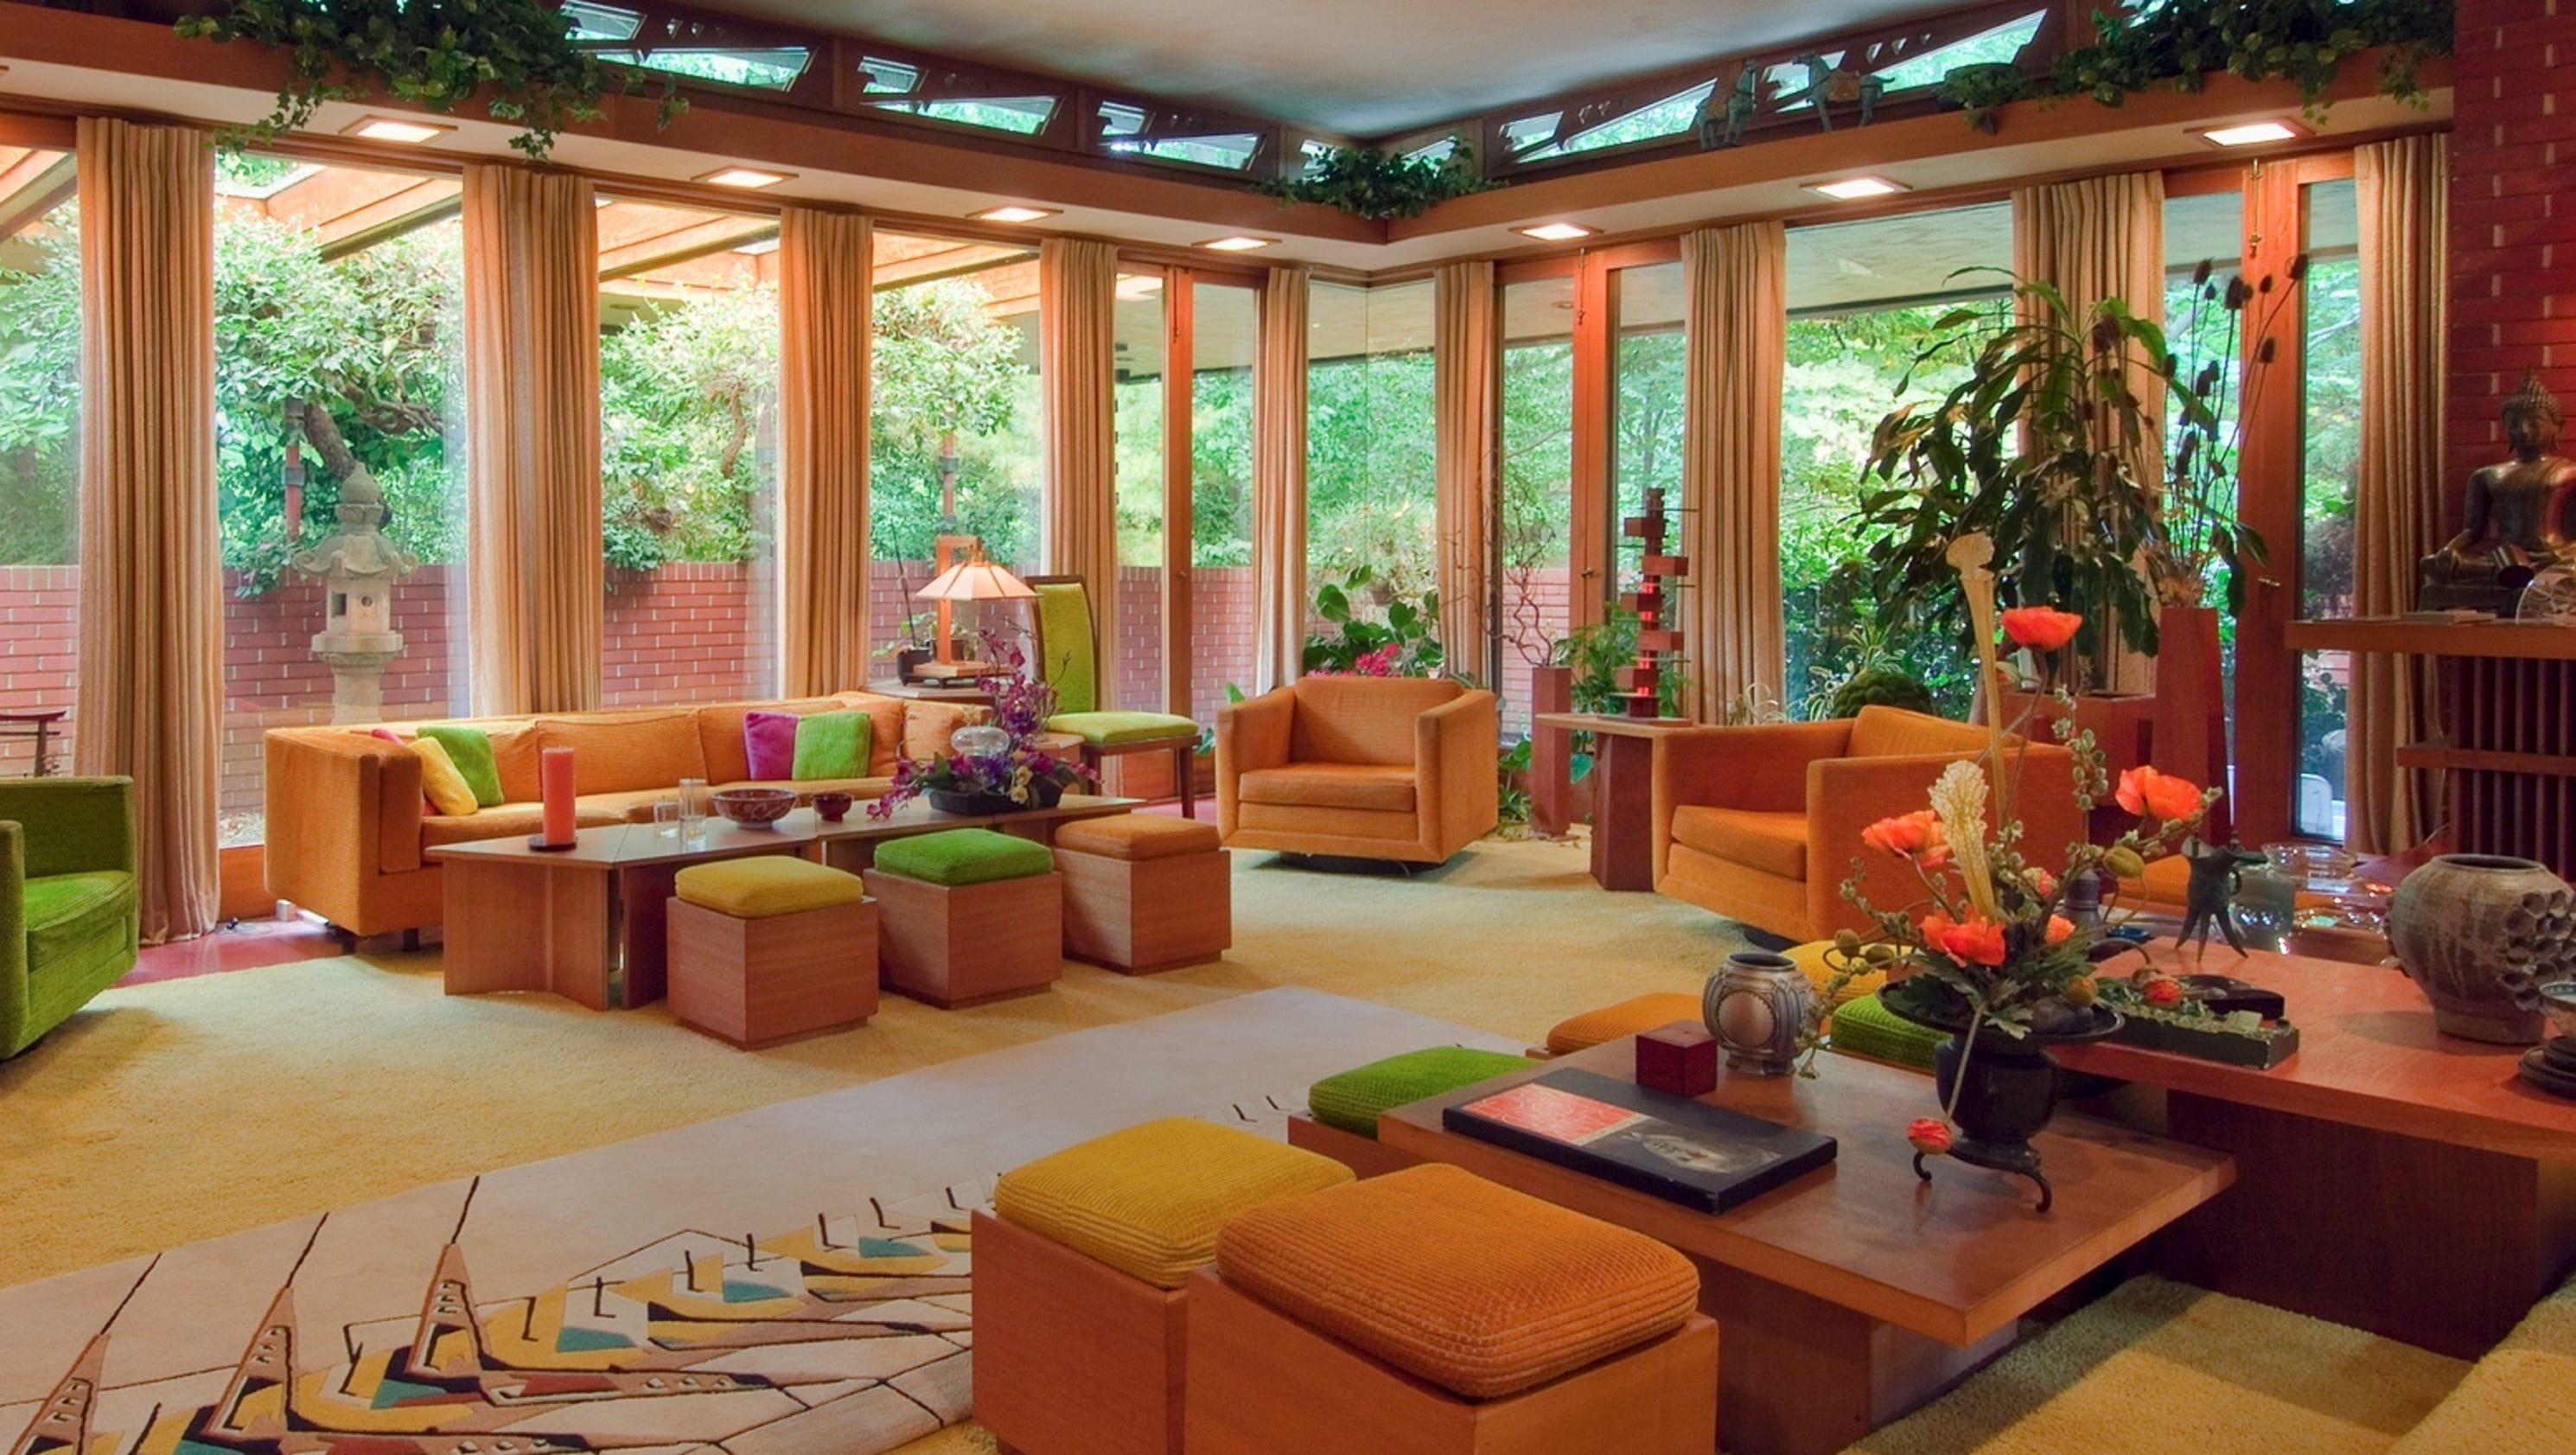 10 Great Frank Lloyd Wright Home Tours